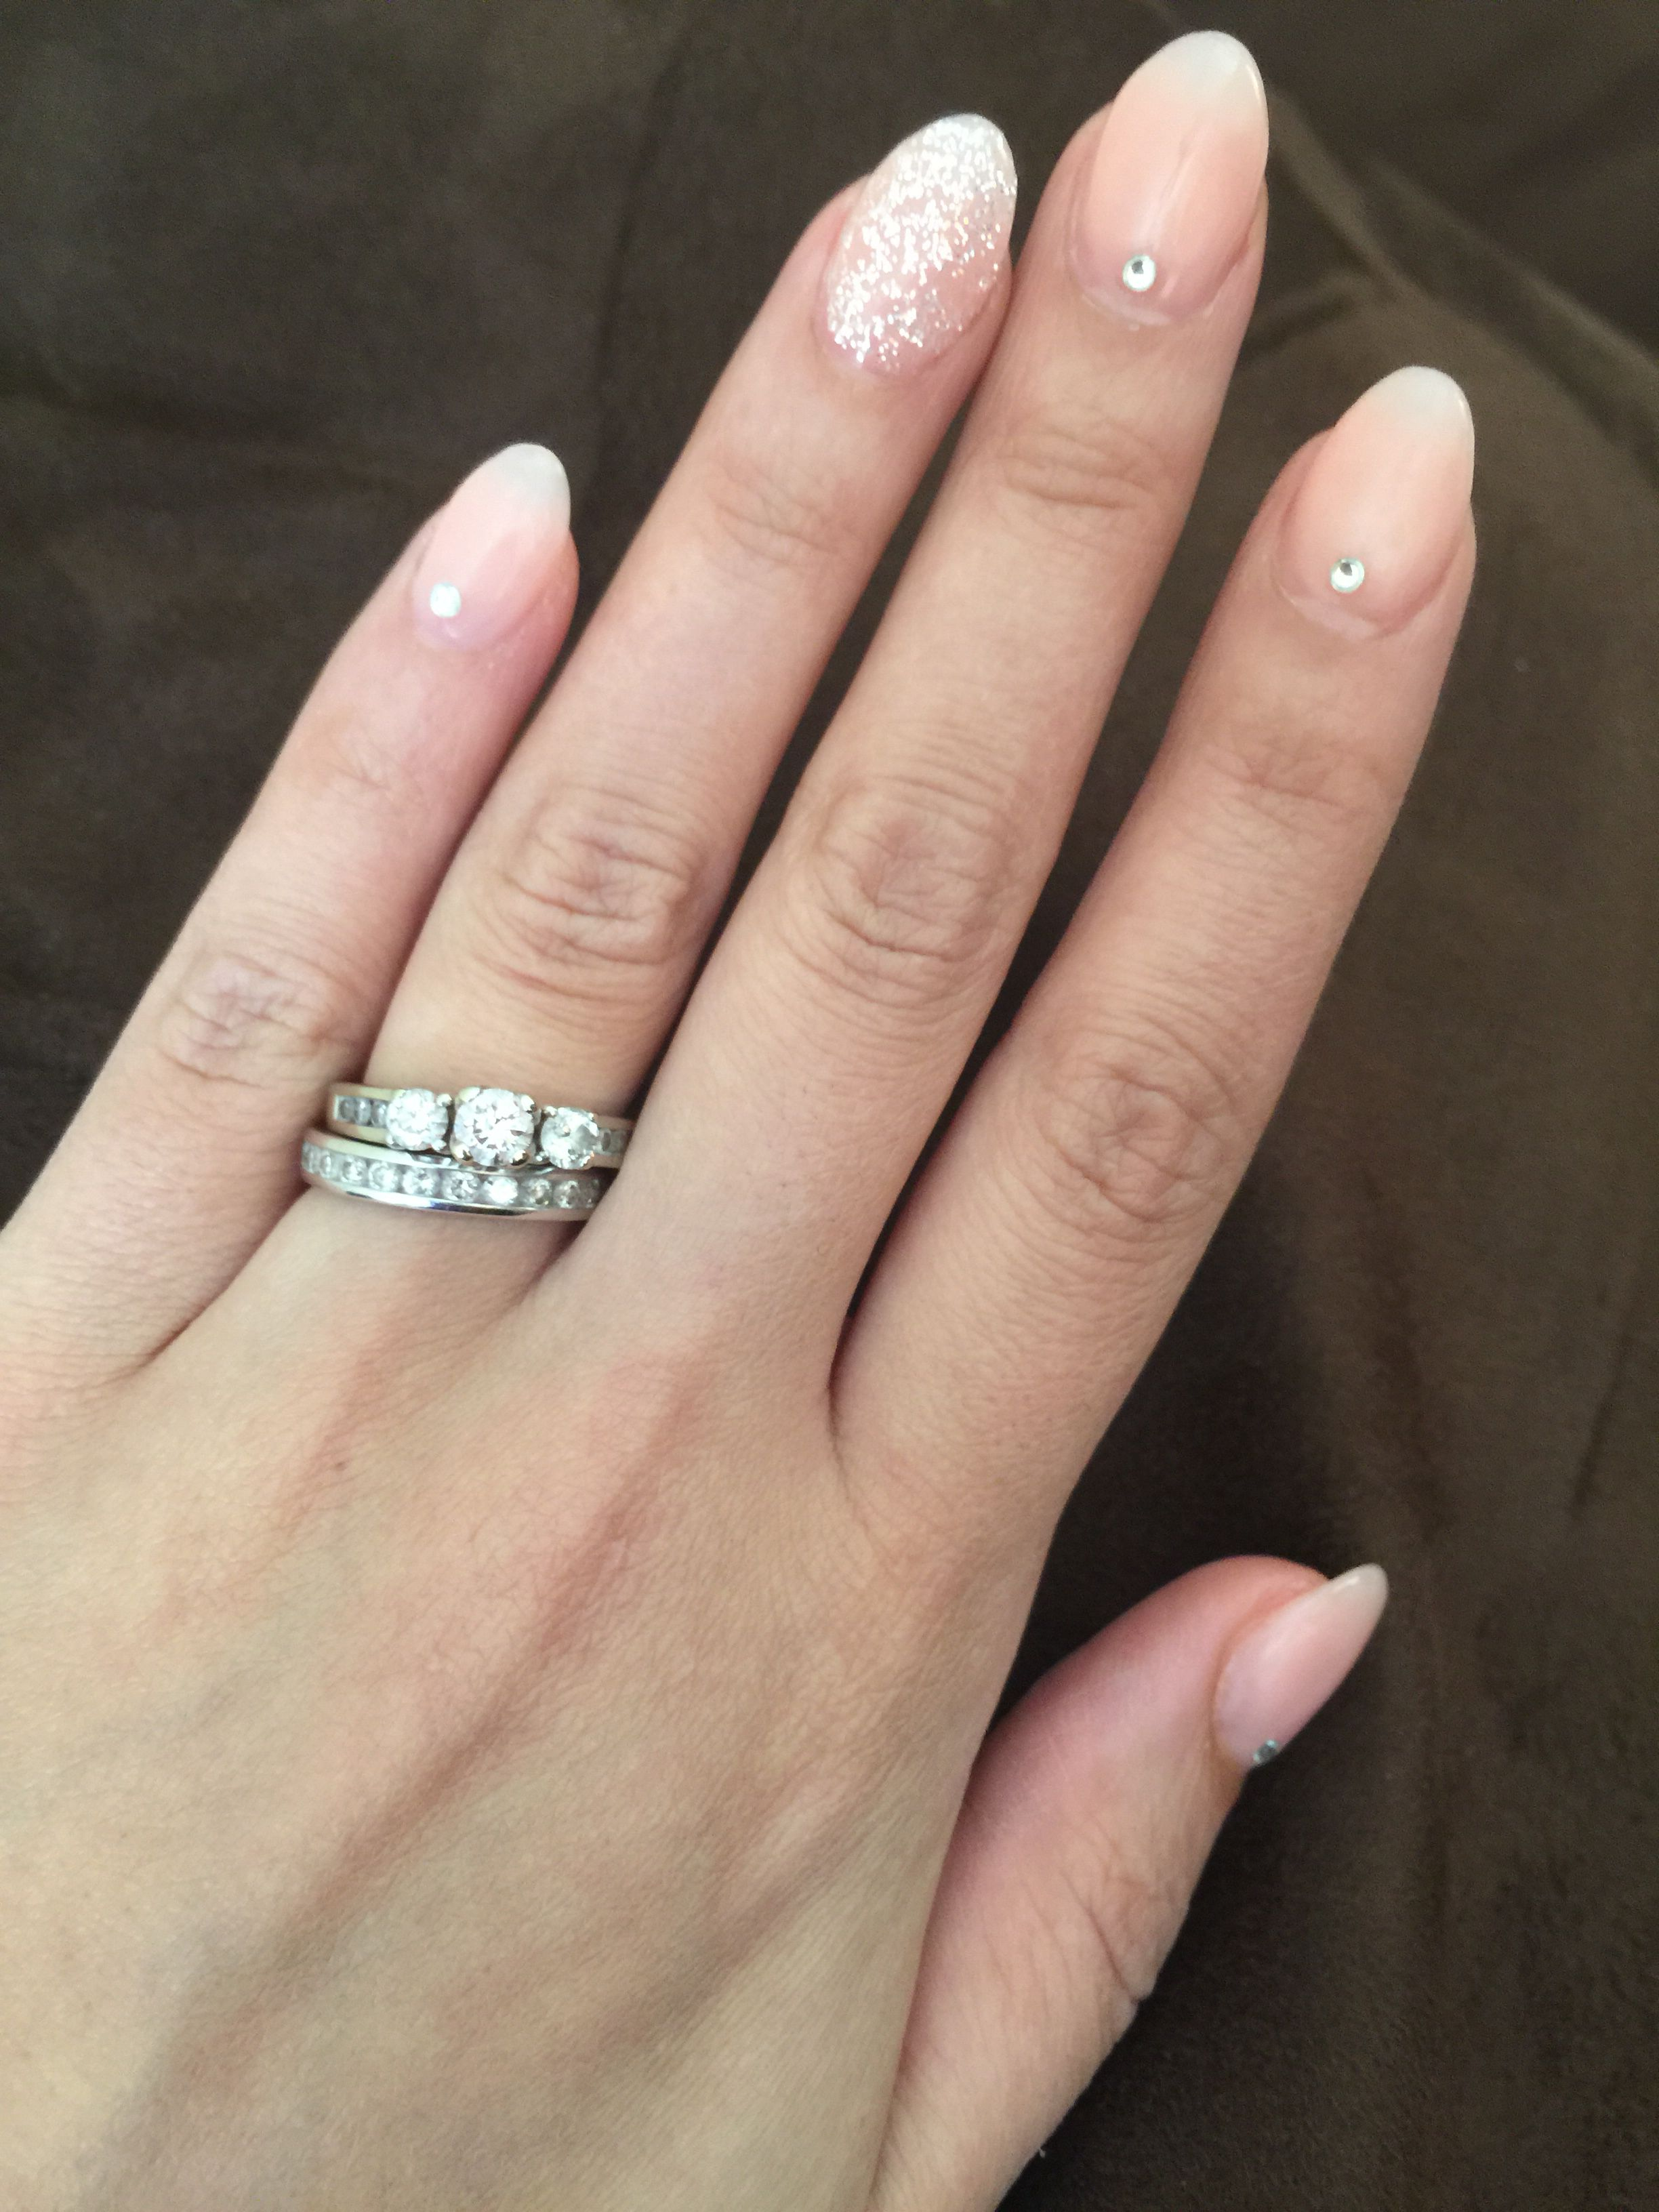 Oval shaped acrylic nails w/ rhinestones and a touch of glitter ...